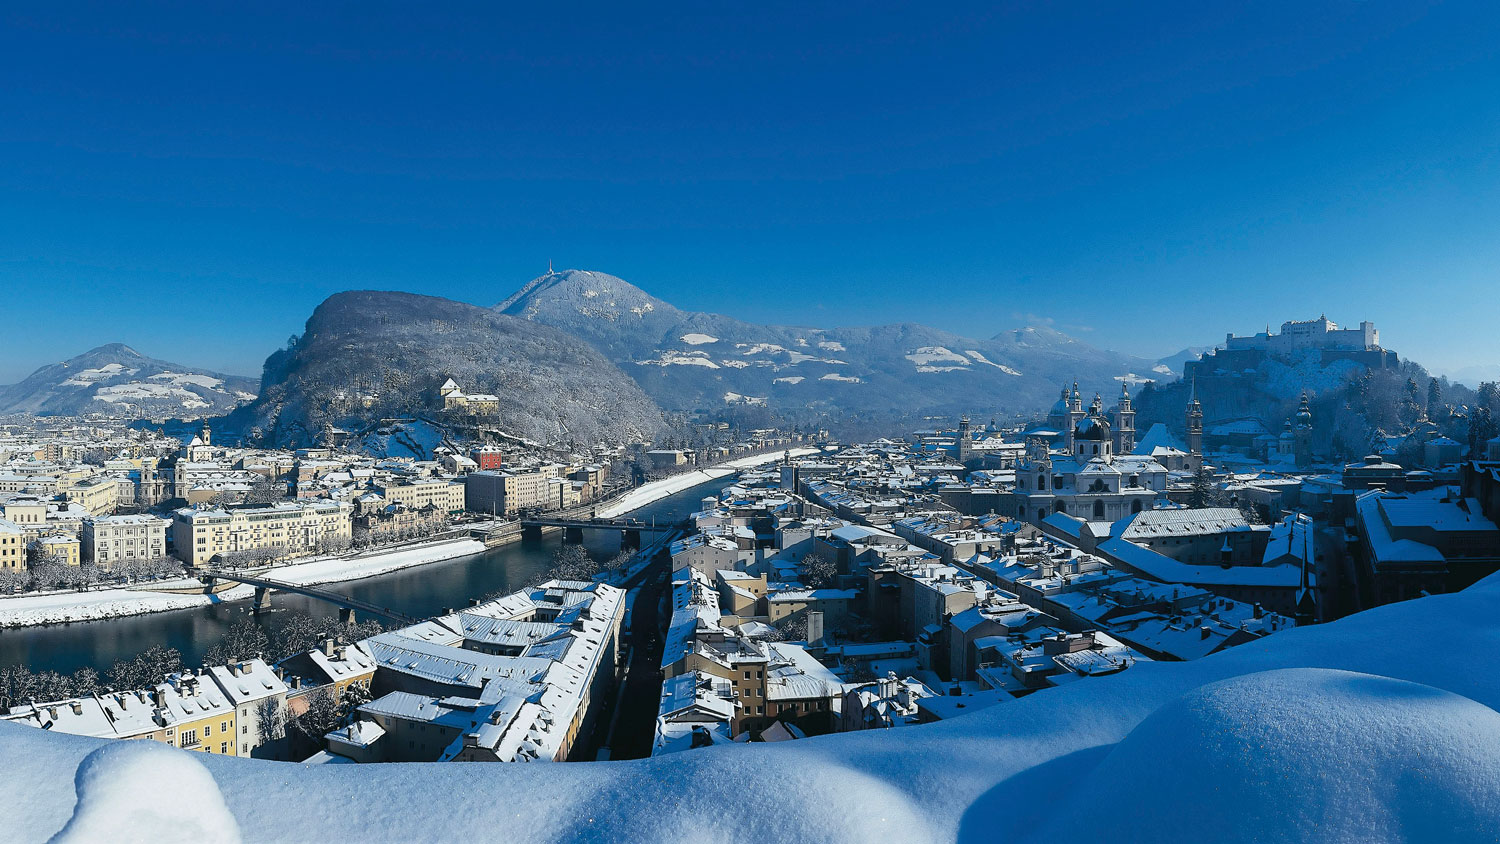 Salzburg under a blanket of snow